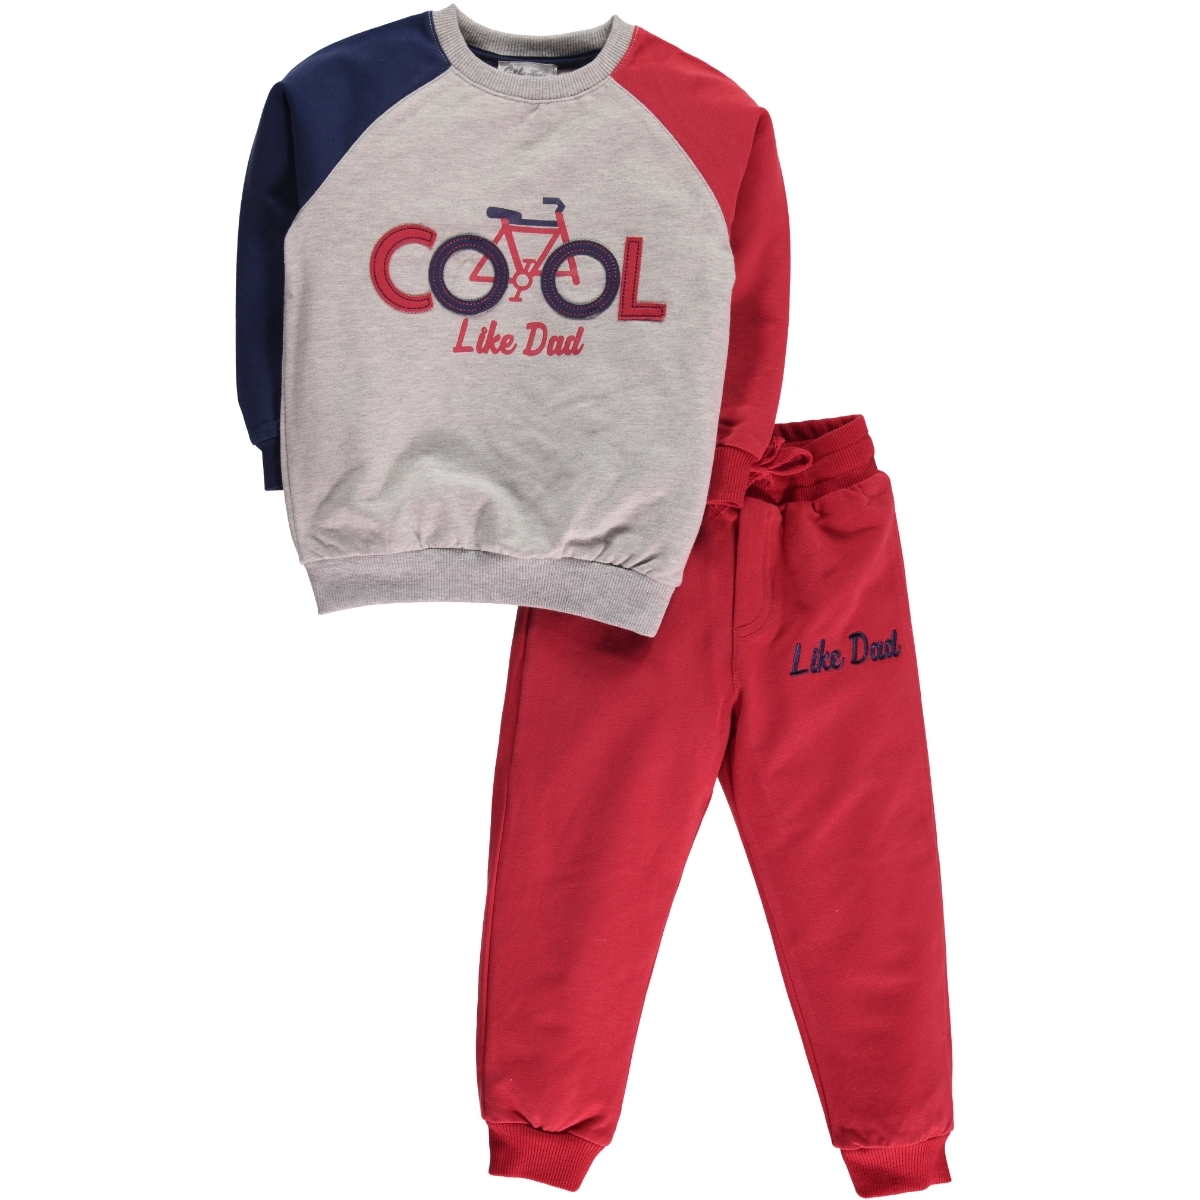 Cvl Boy Burgundy Sweat Suit 2-5 Years